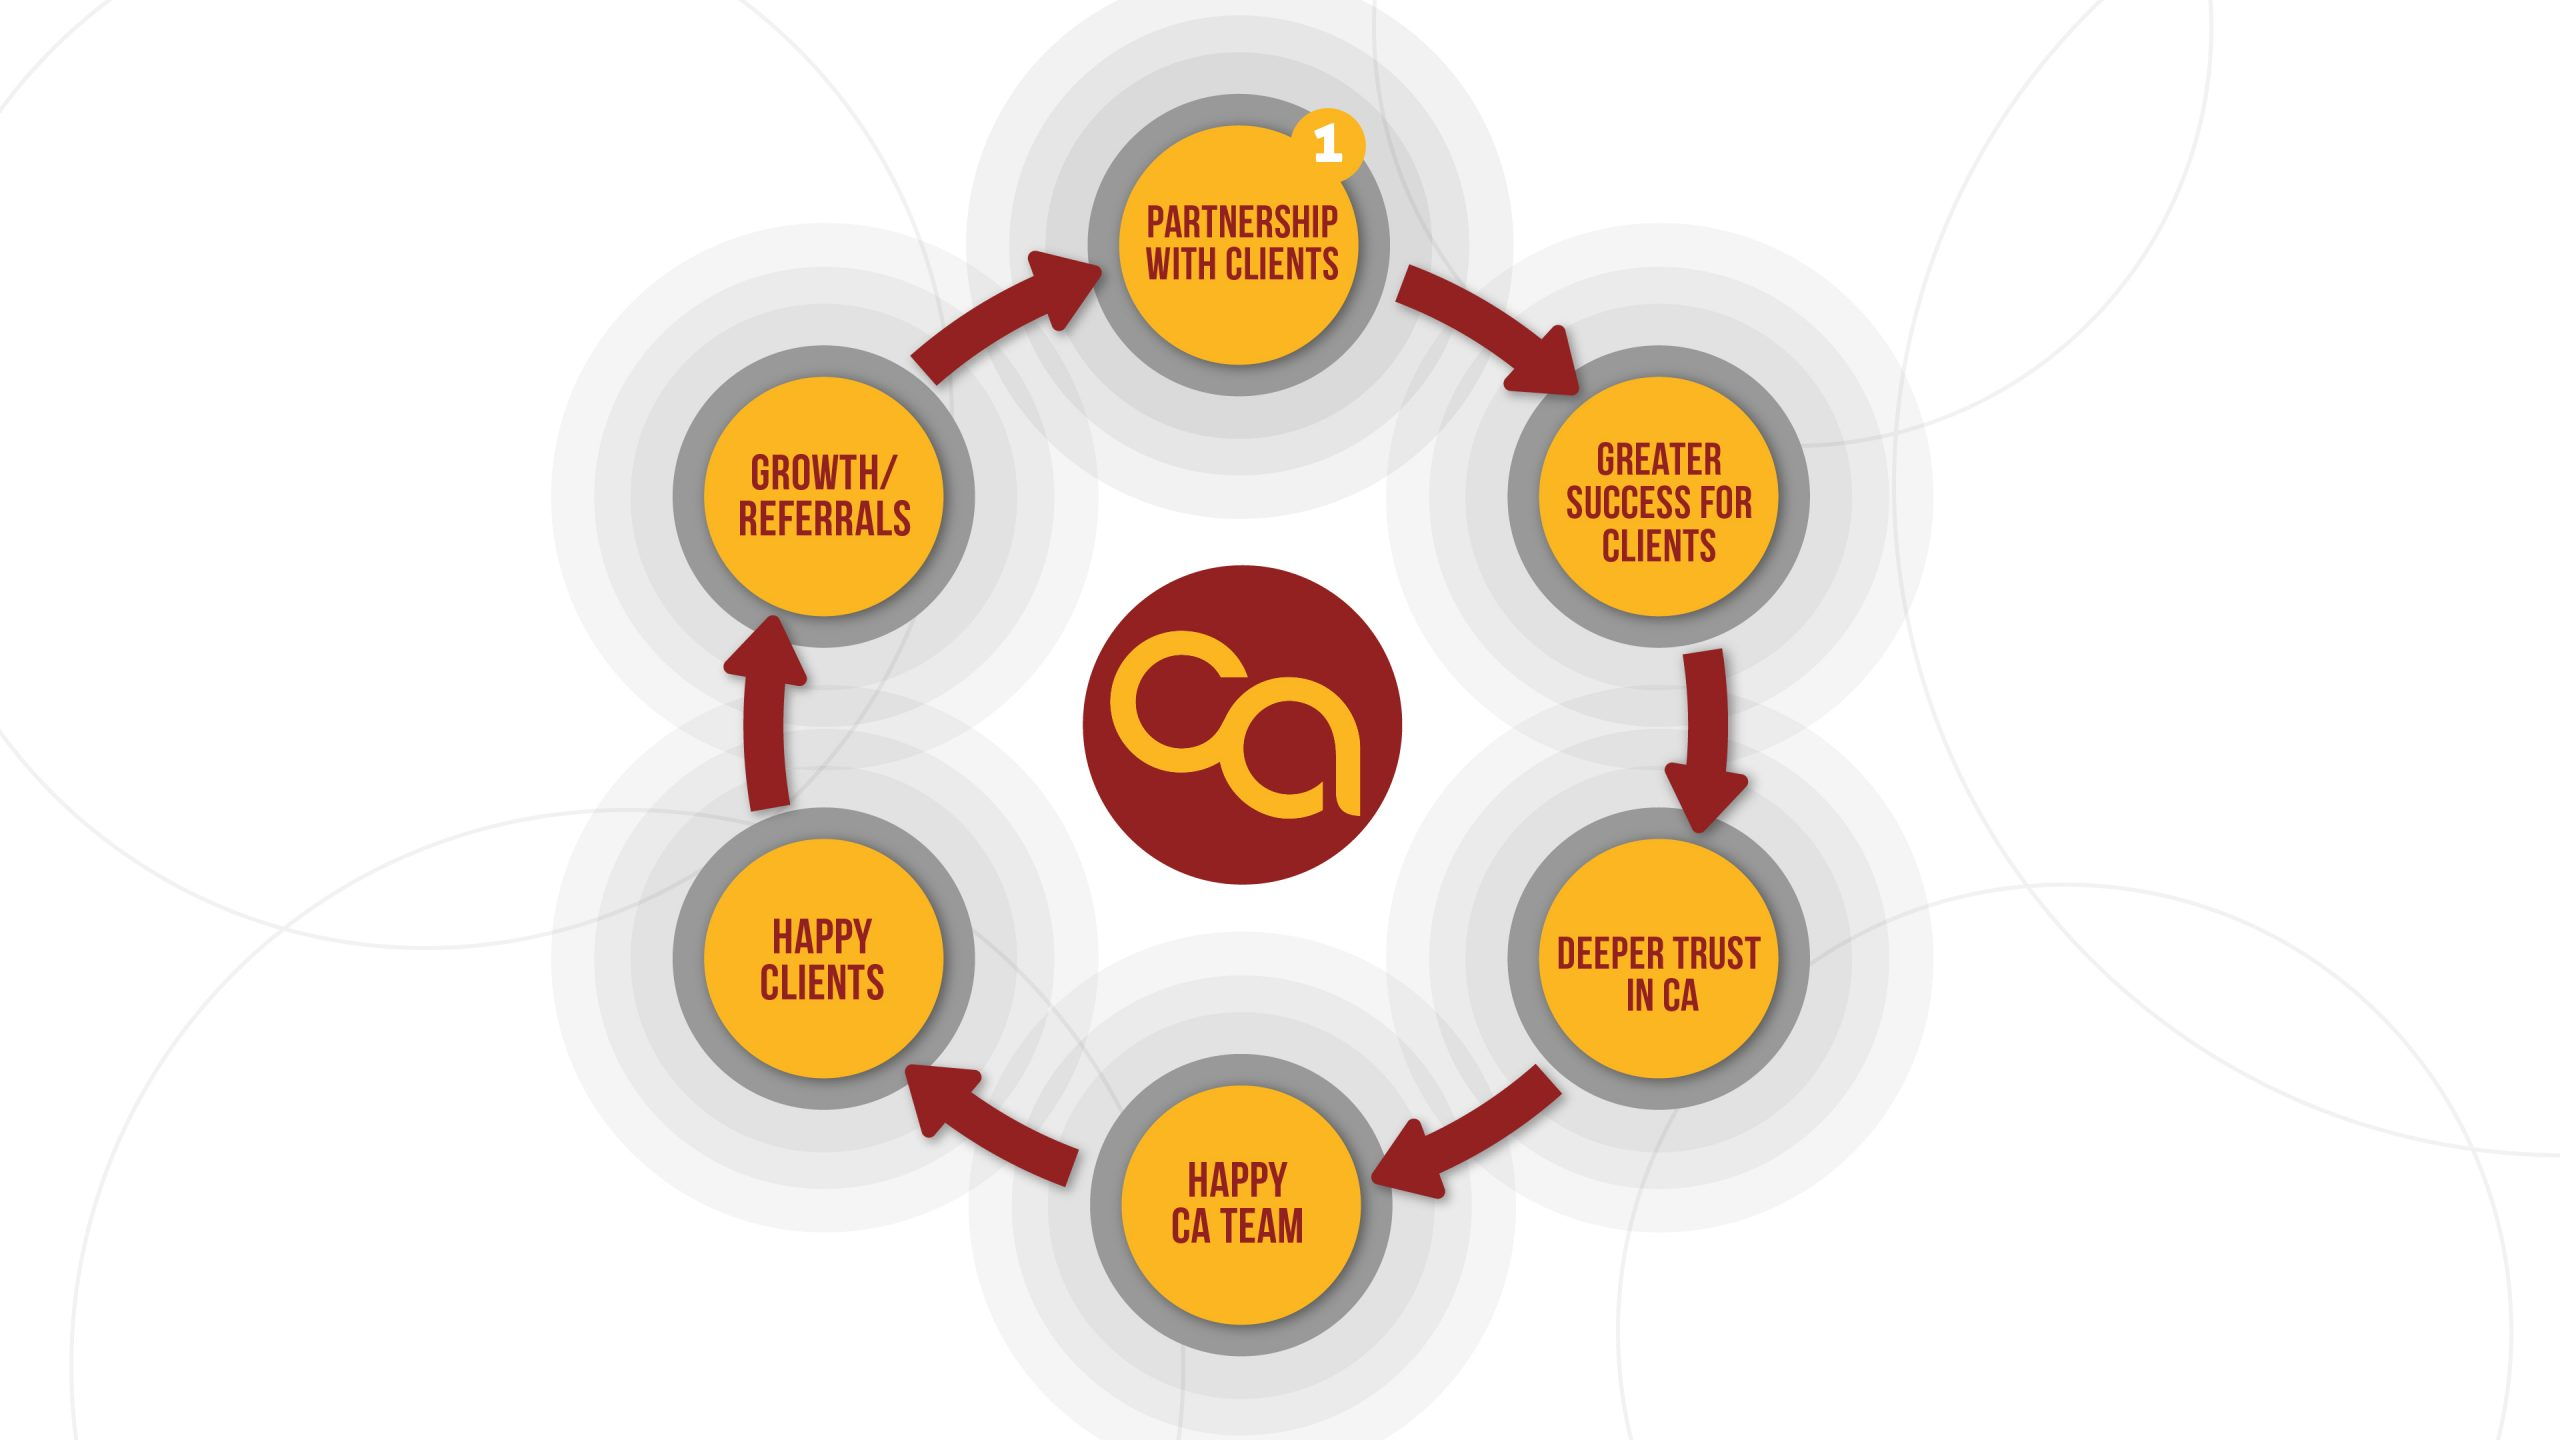 CA's partnership with clients is the first step in a cycle of good.